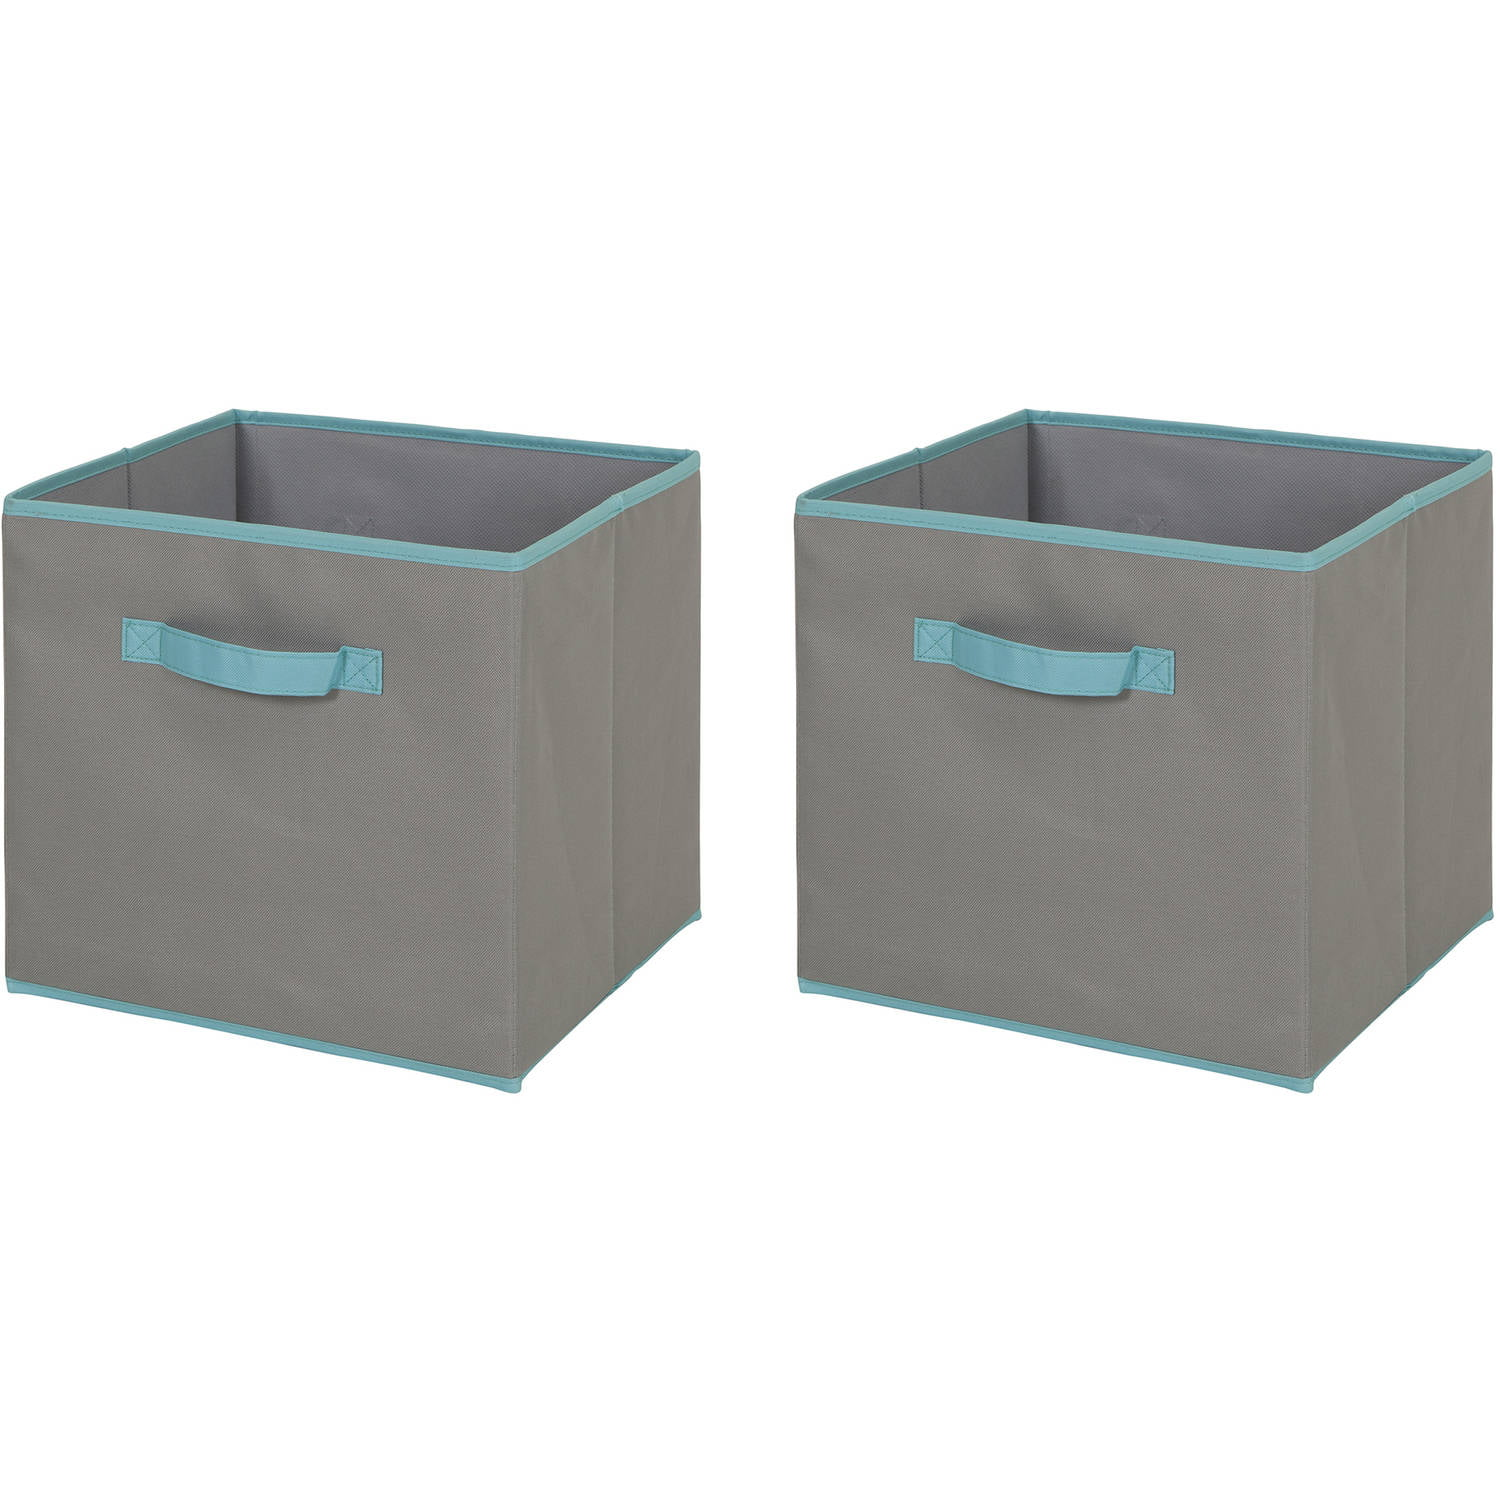 South Shore Fabric Storage Bin, 2 Pack, Large Size, Gray And Turquoise    Walmart.com